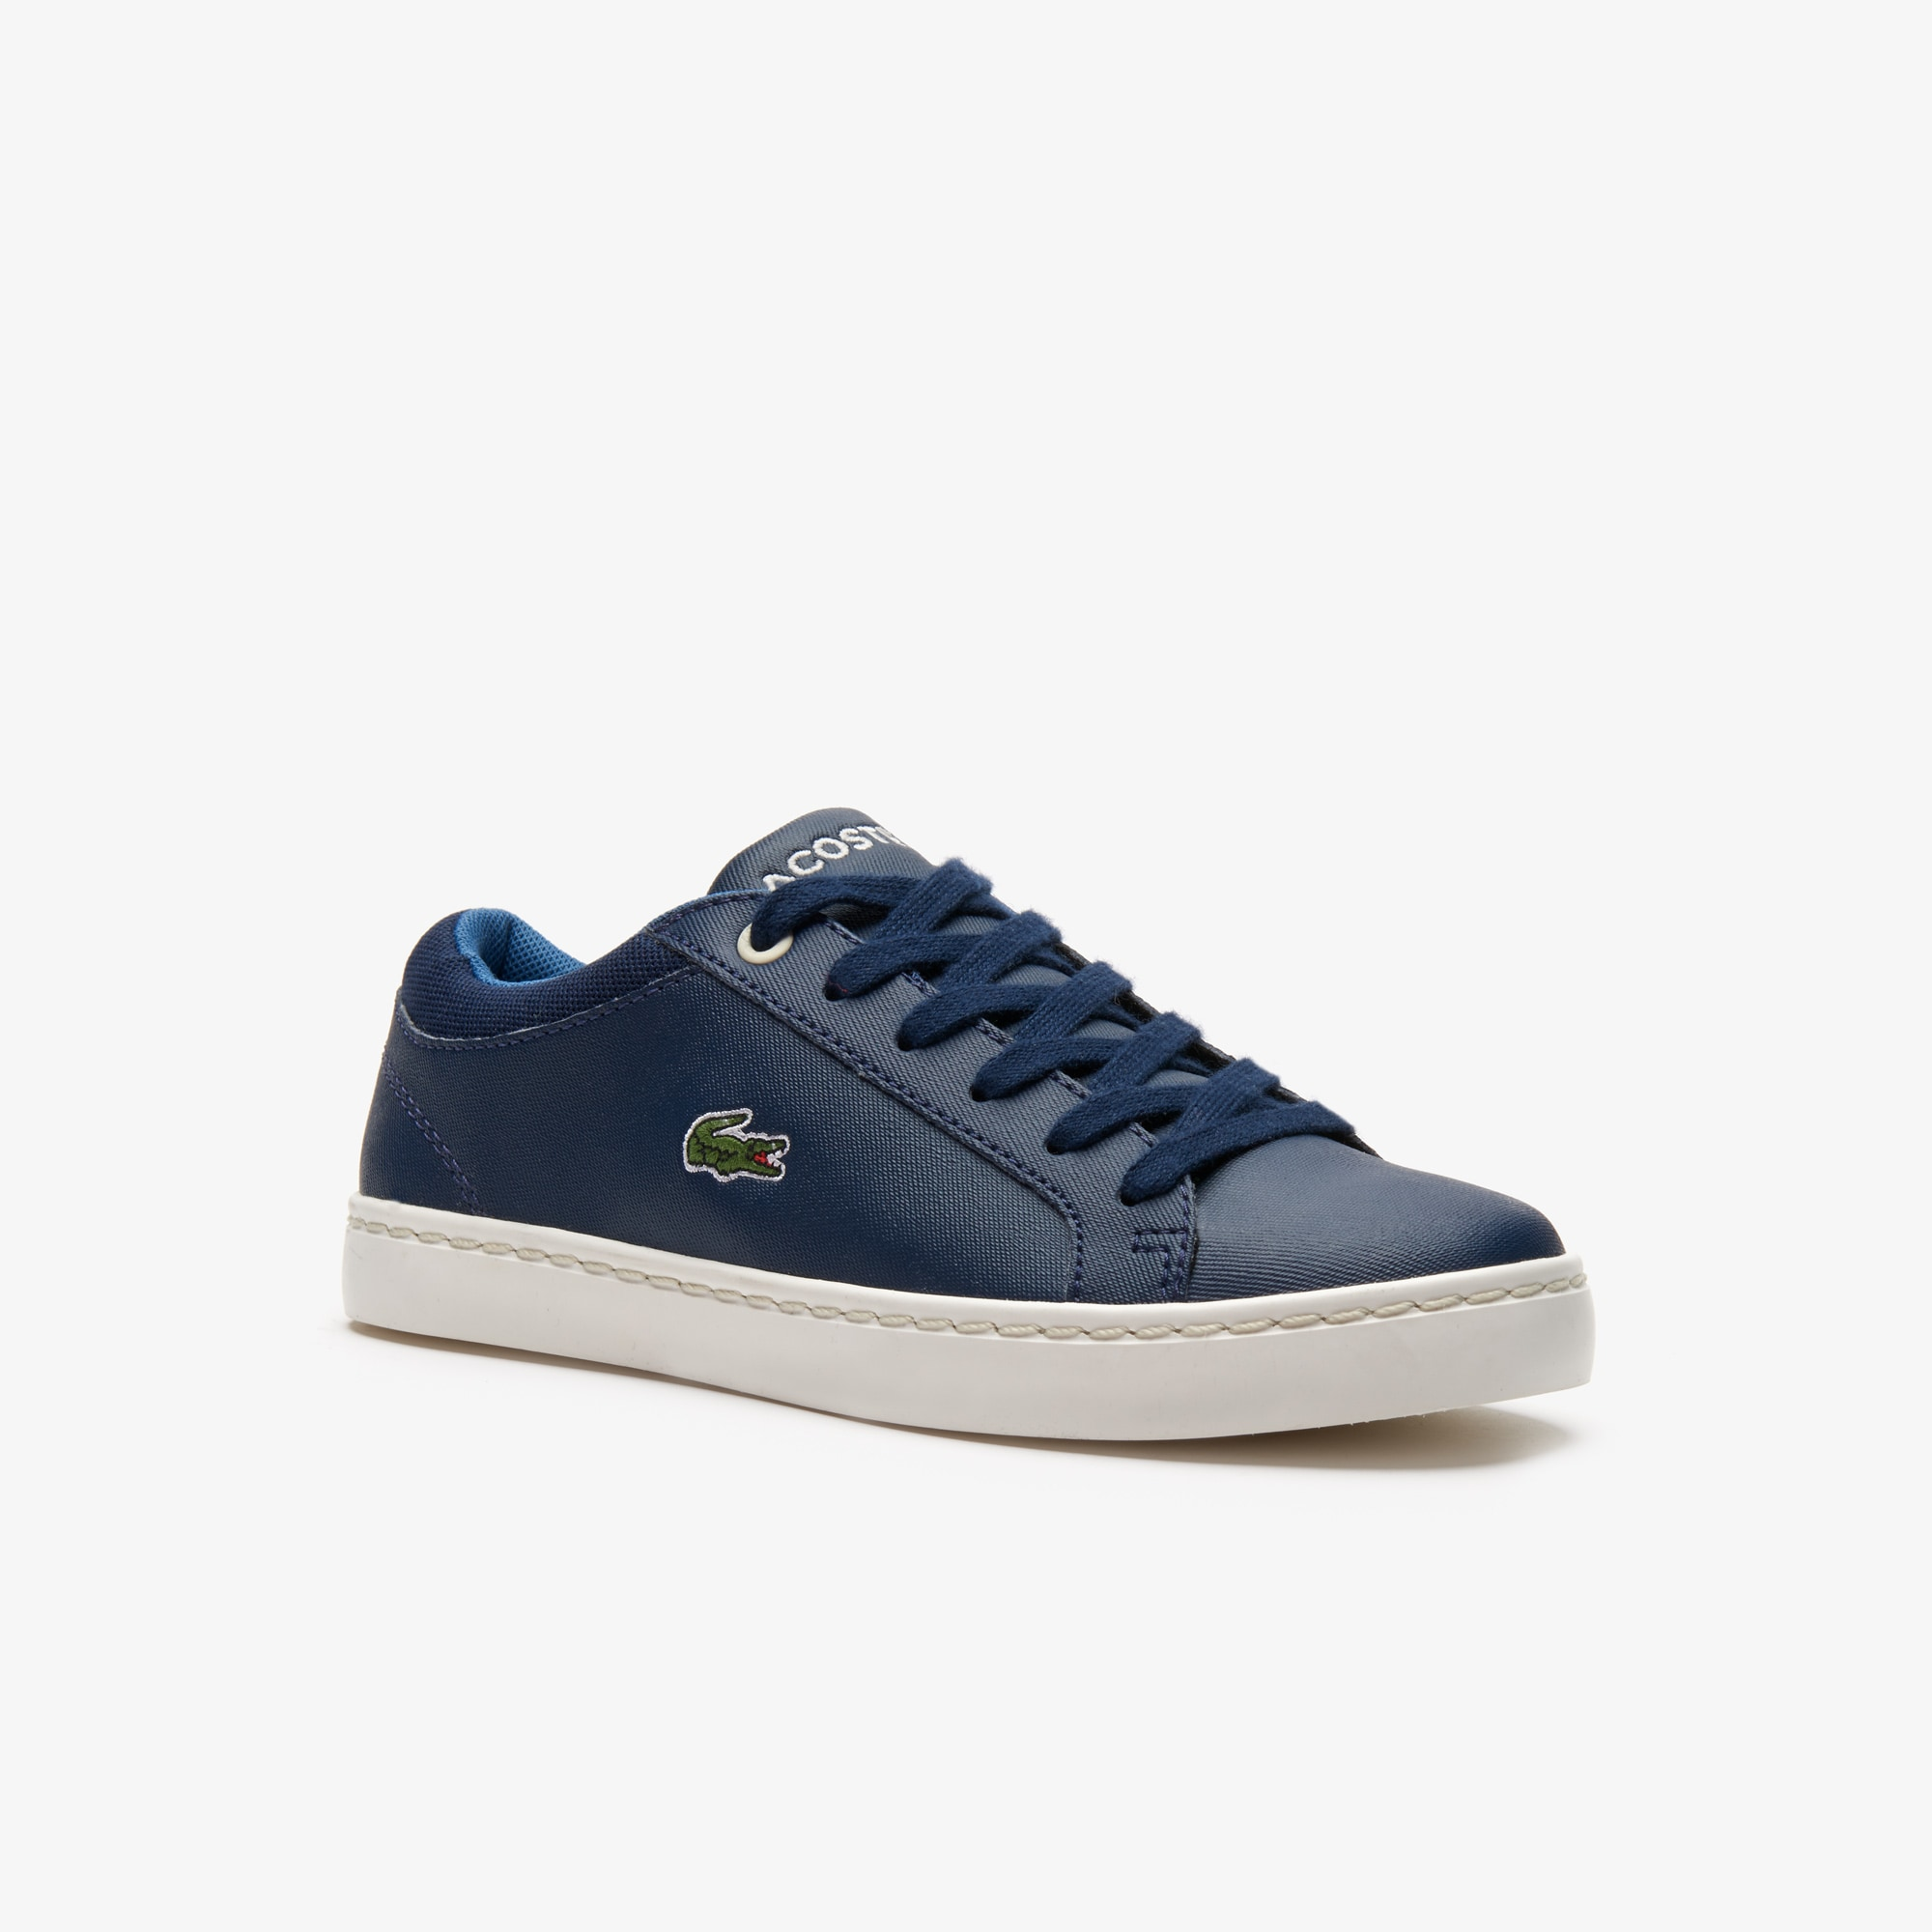 43f4cdbe7e6bd Sneakers Straightset enfant en synthétique